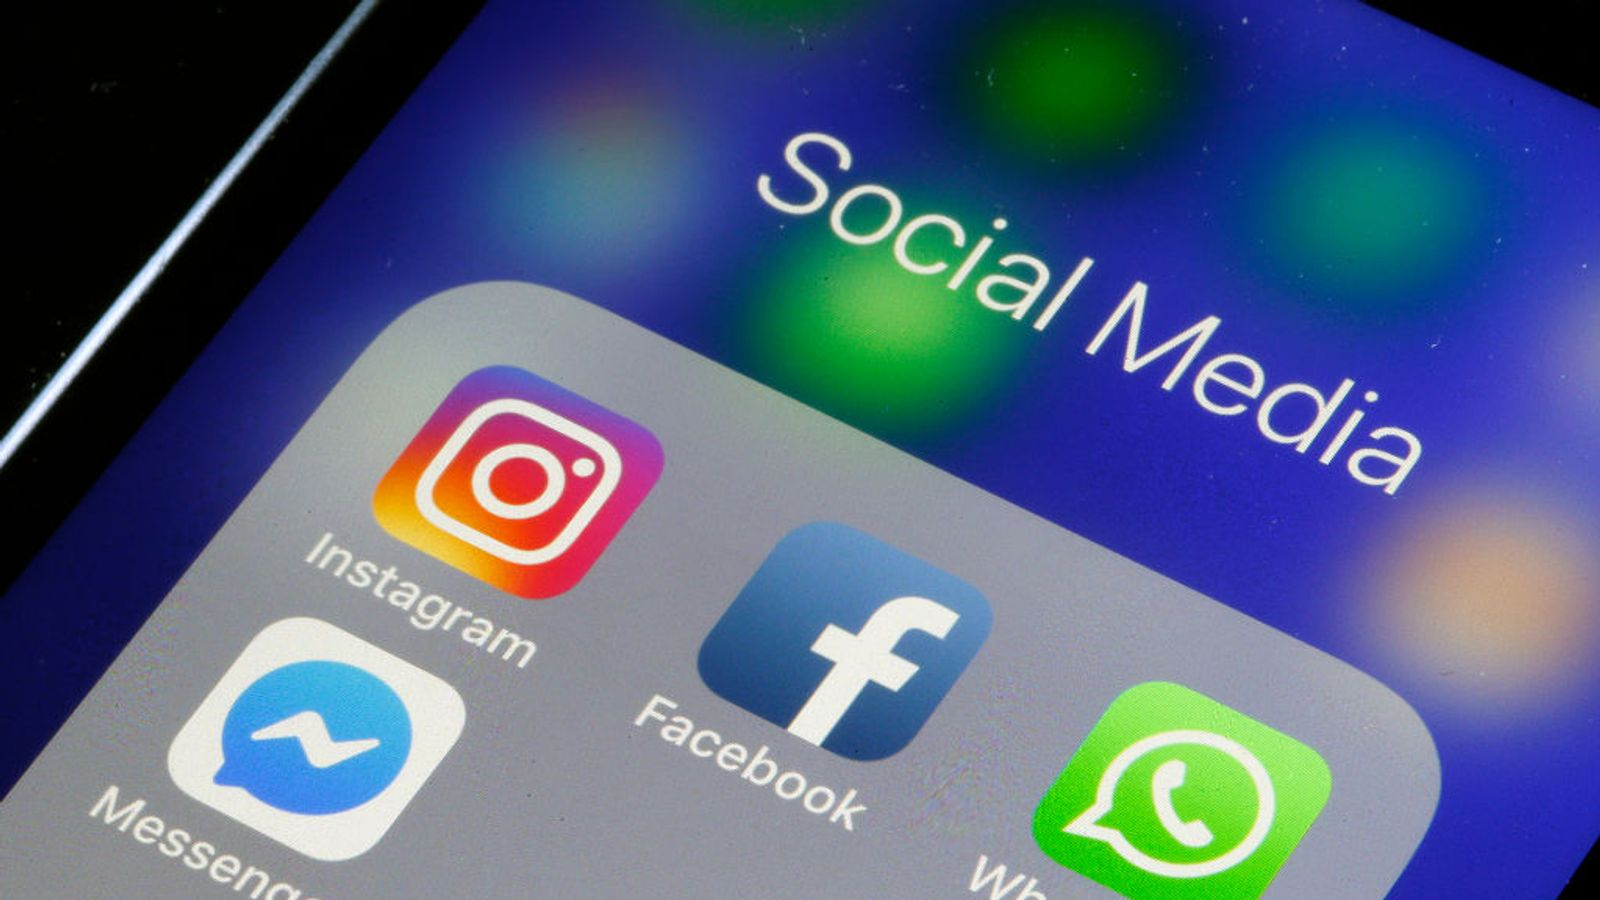 Instagram to warn users over 'bullying' language in their captions - EpicNews